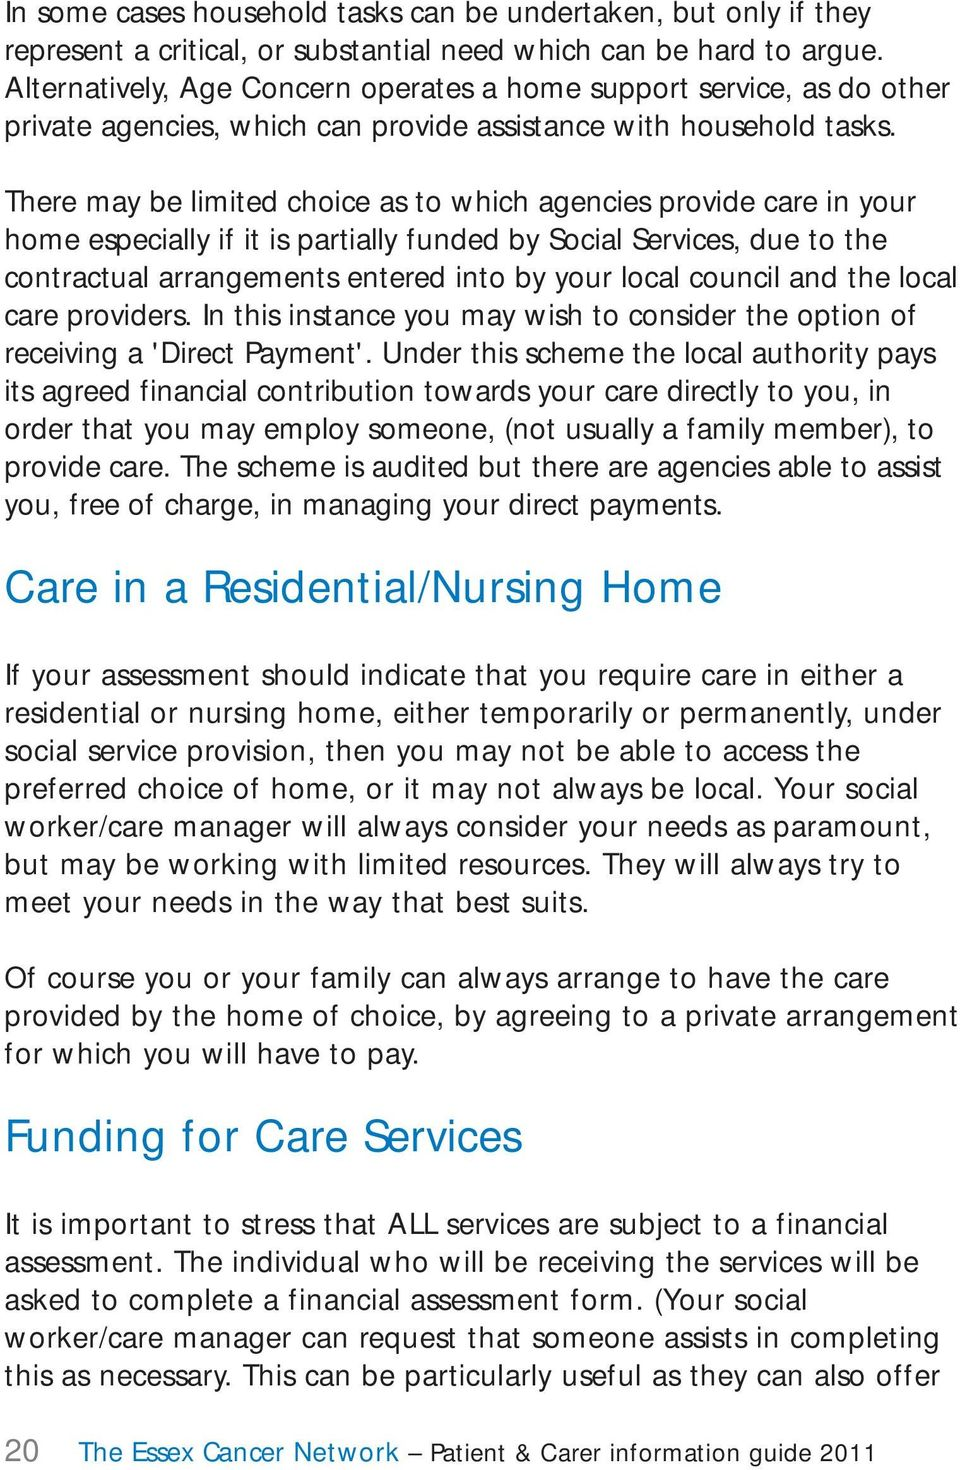 There may be limited choice as to which agencies provide care in your home especially if it is partially funded by Social Services, due to the contractual arrangements entered into by your local